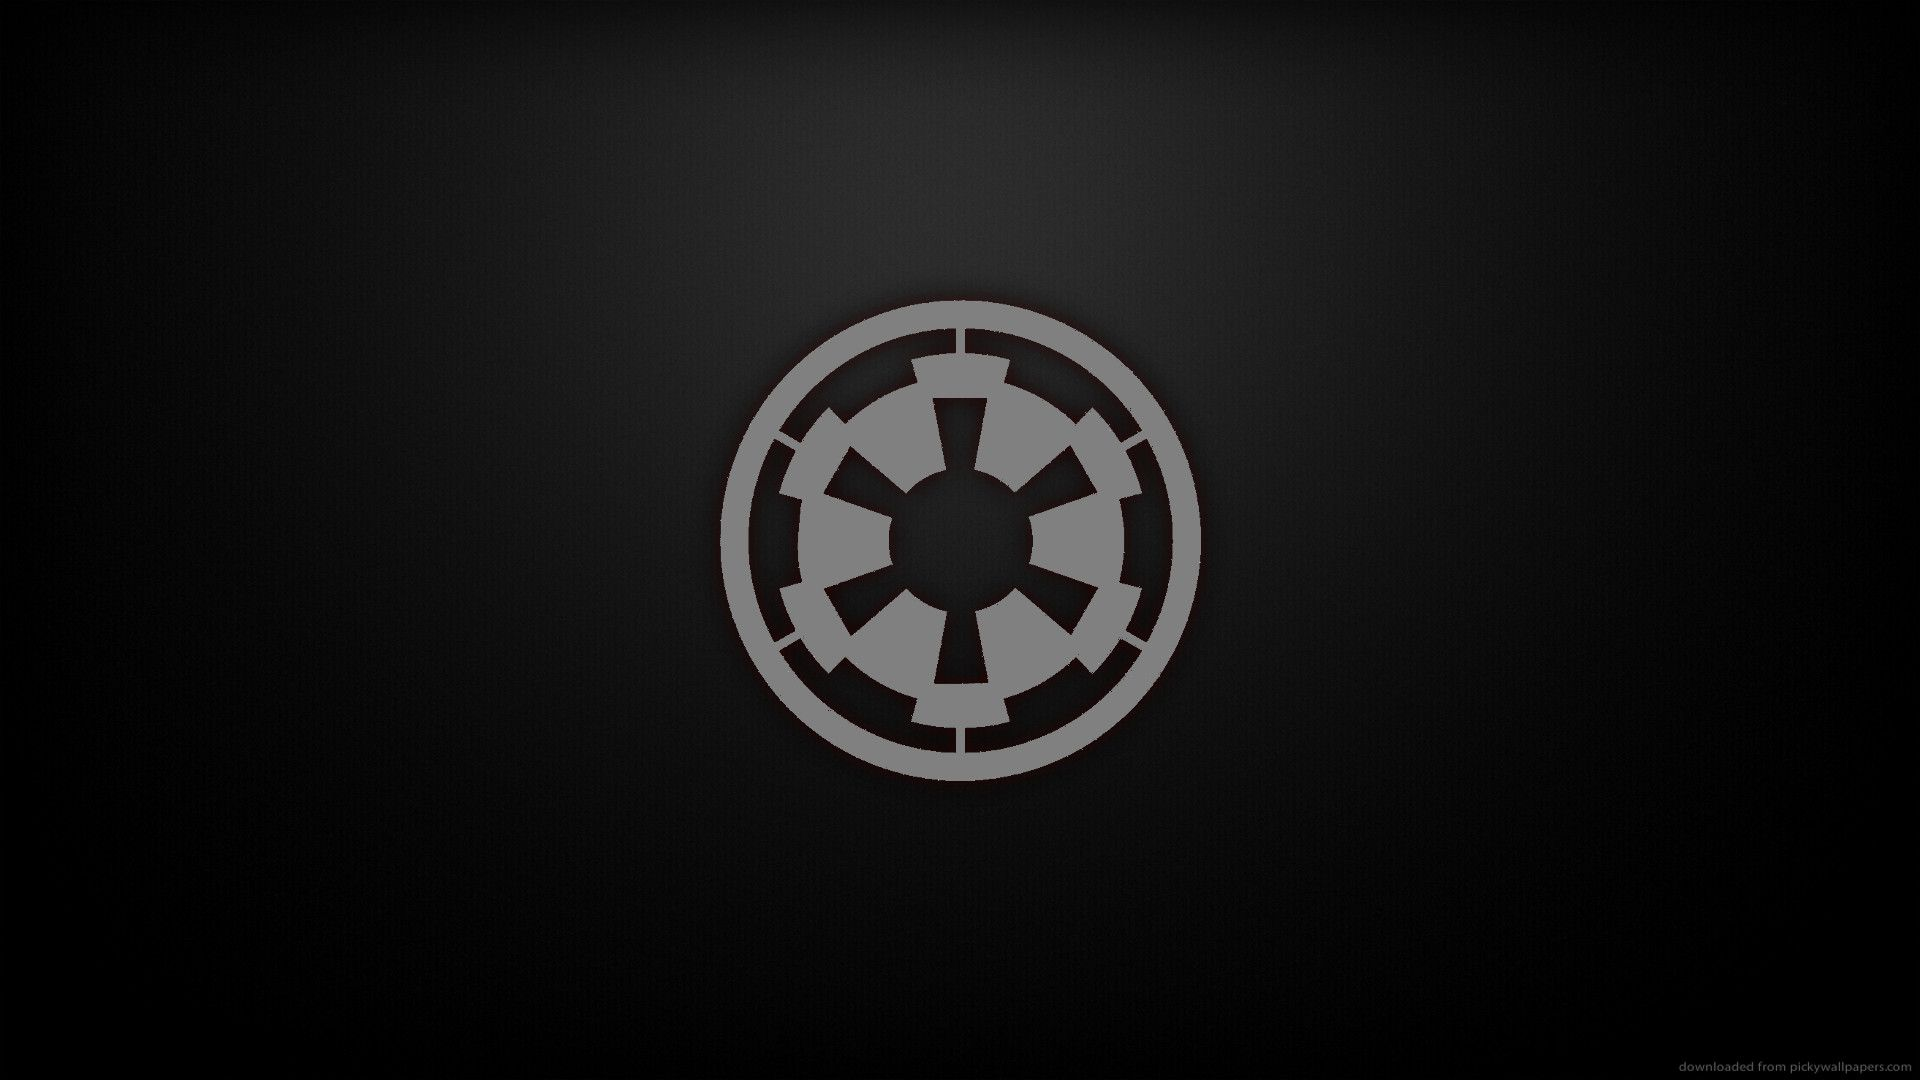 30 Star Wars Imperial Logo Wallpapers On Wallpapersafari